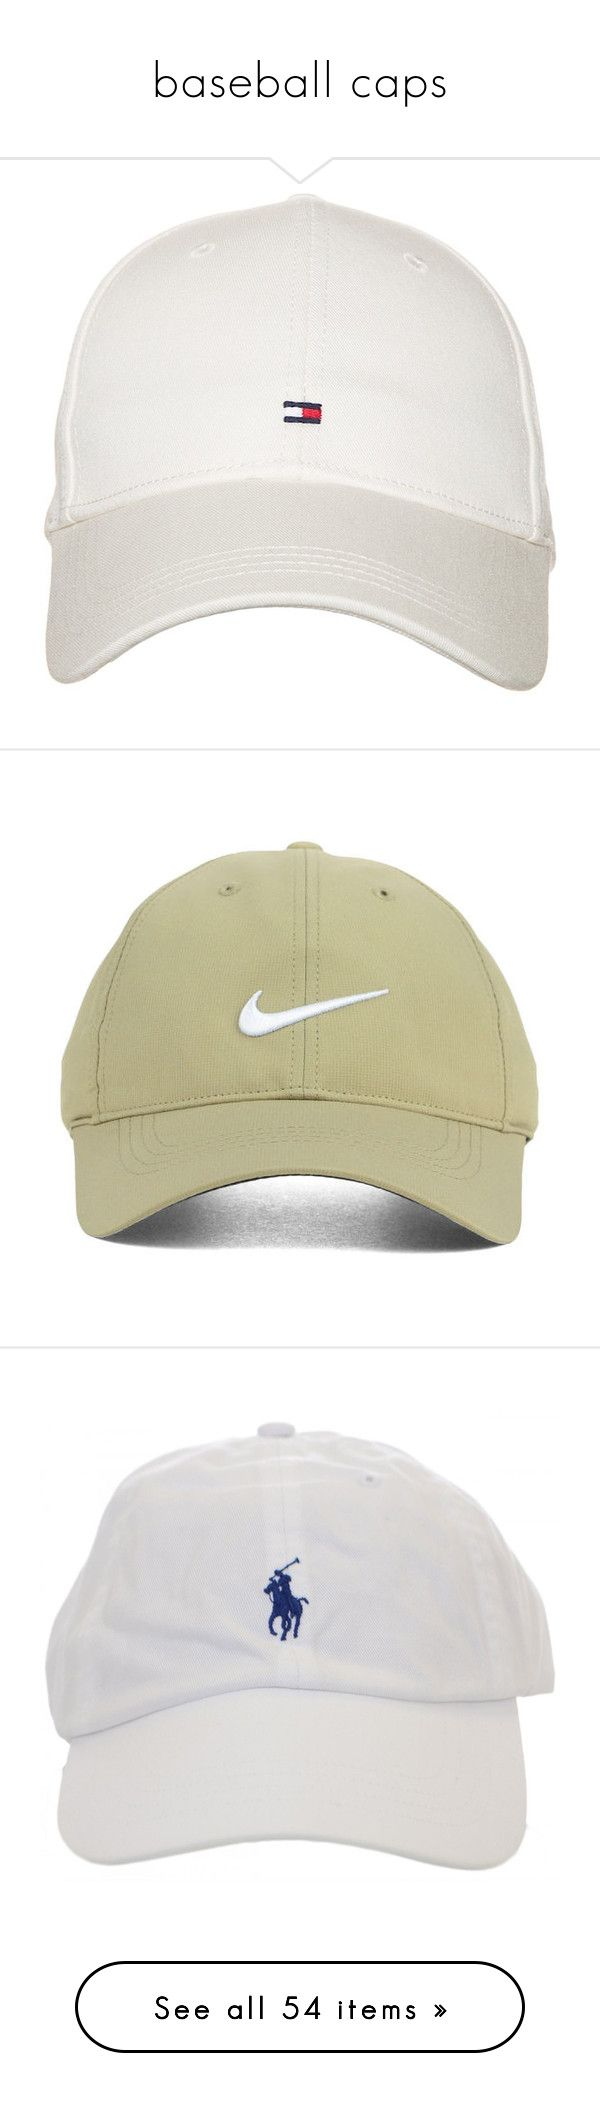 """baseball caps"" by jazziearmstrong ❤ liked on Polyvore featuring accessories, hats, tommy hilfiger cap, tommy hilfiger, white hat, caps hats, tommy hilfiger hats, headwear, nike golf and nike golf cap"